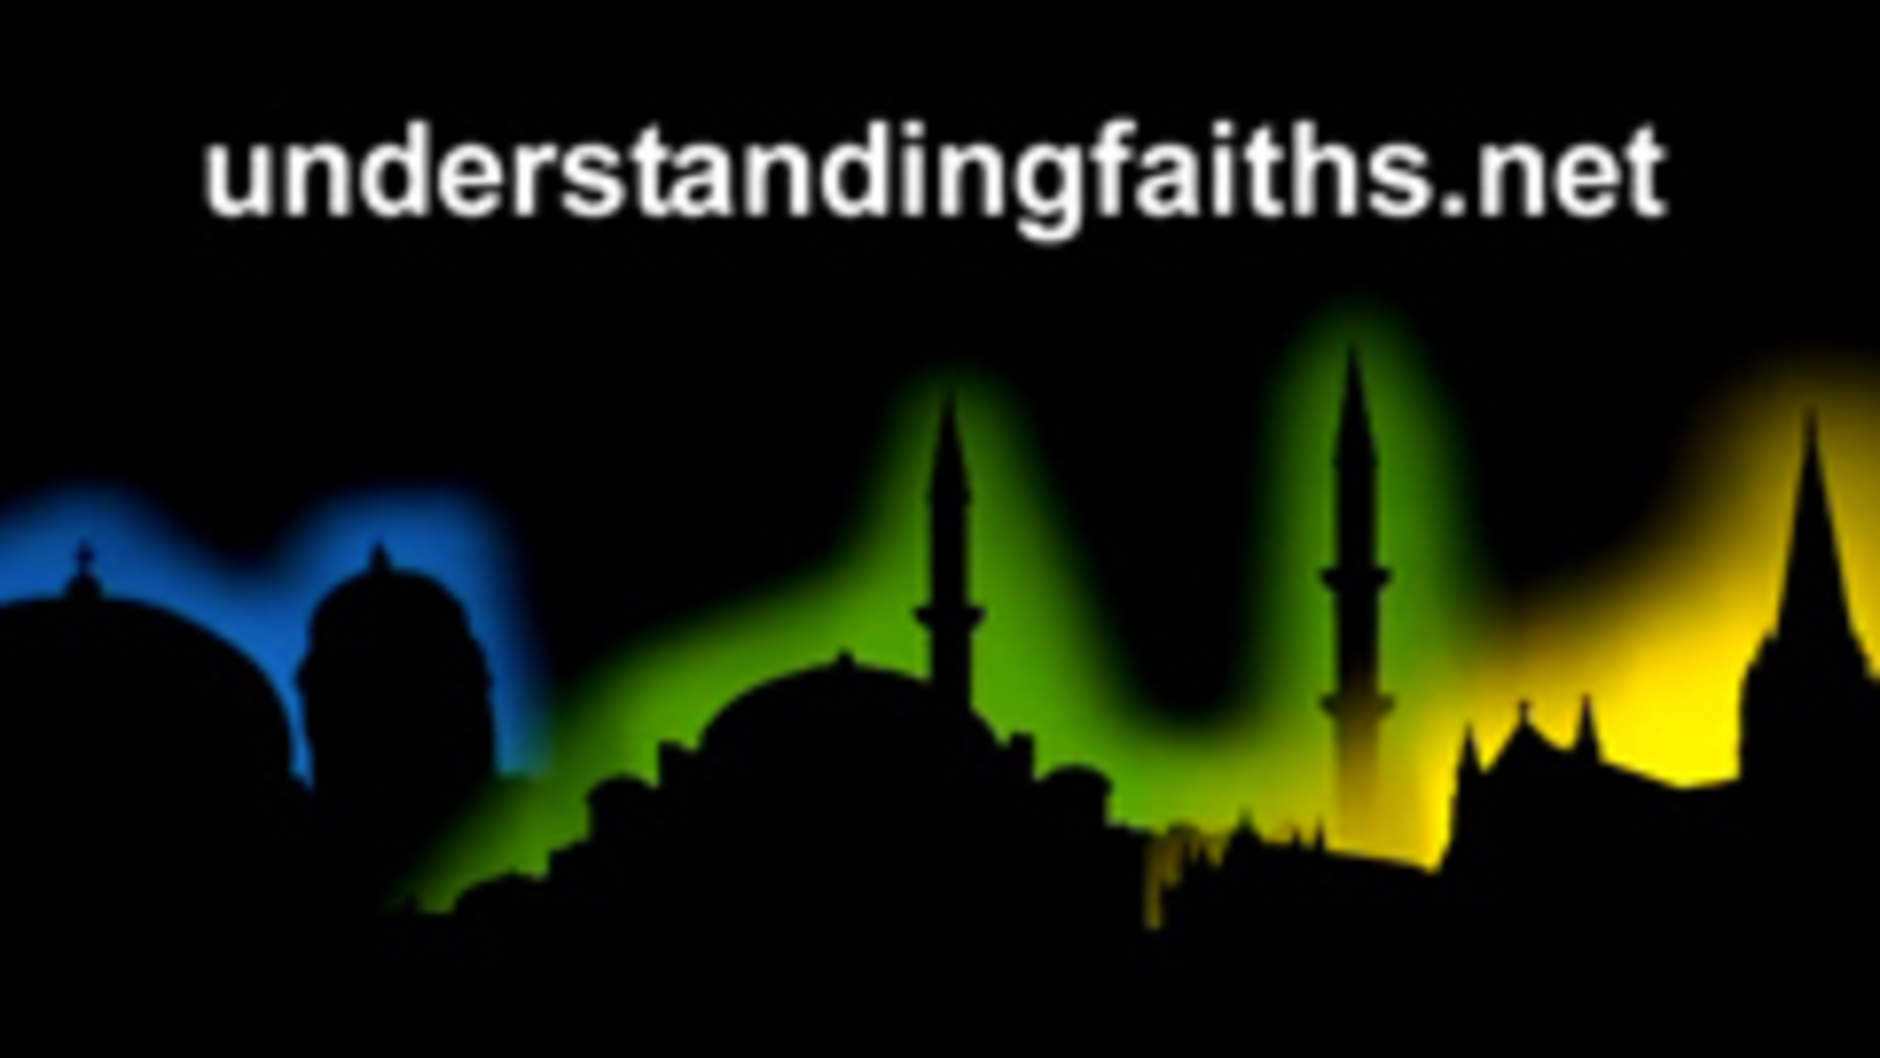 Coexist developing Understanding Faiths series